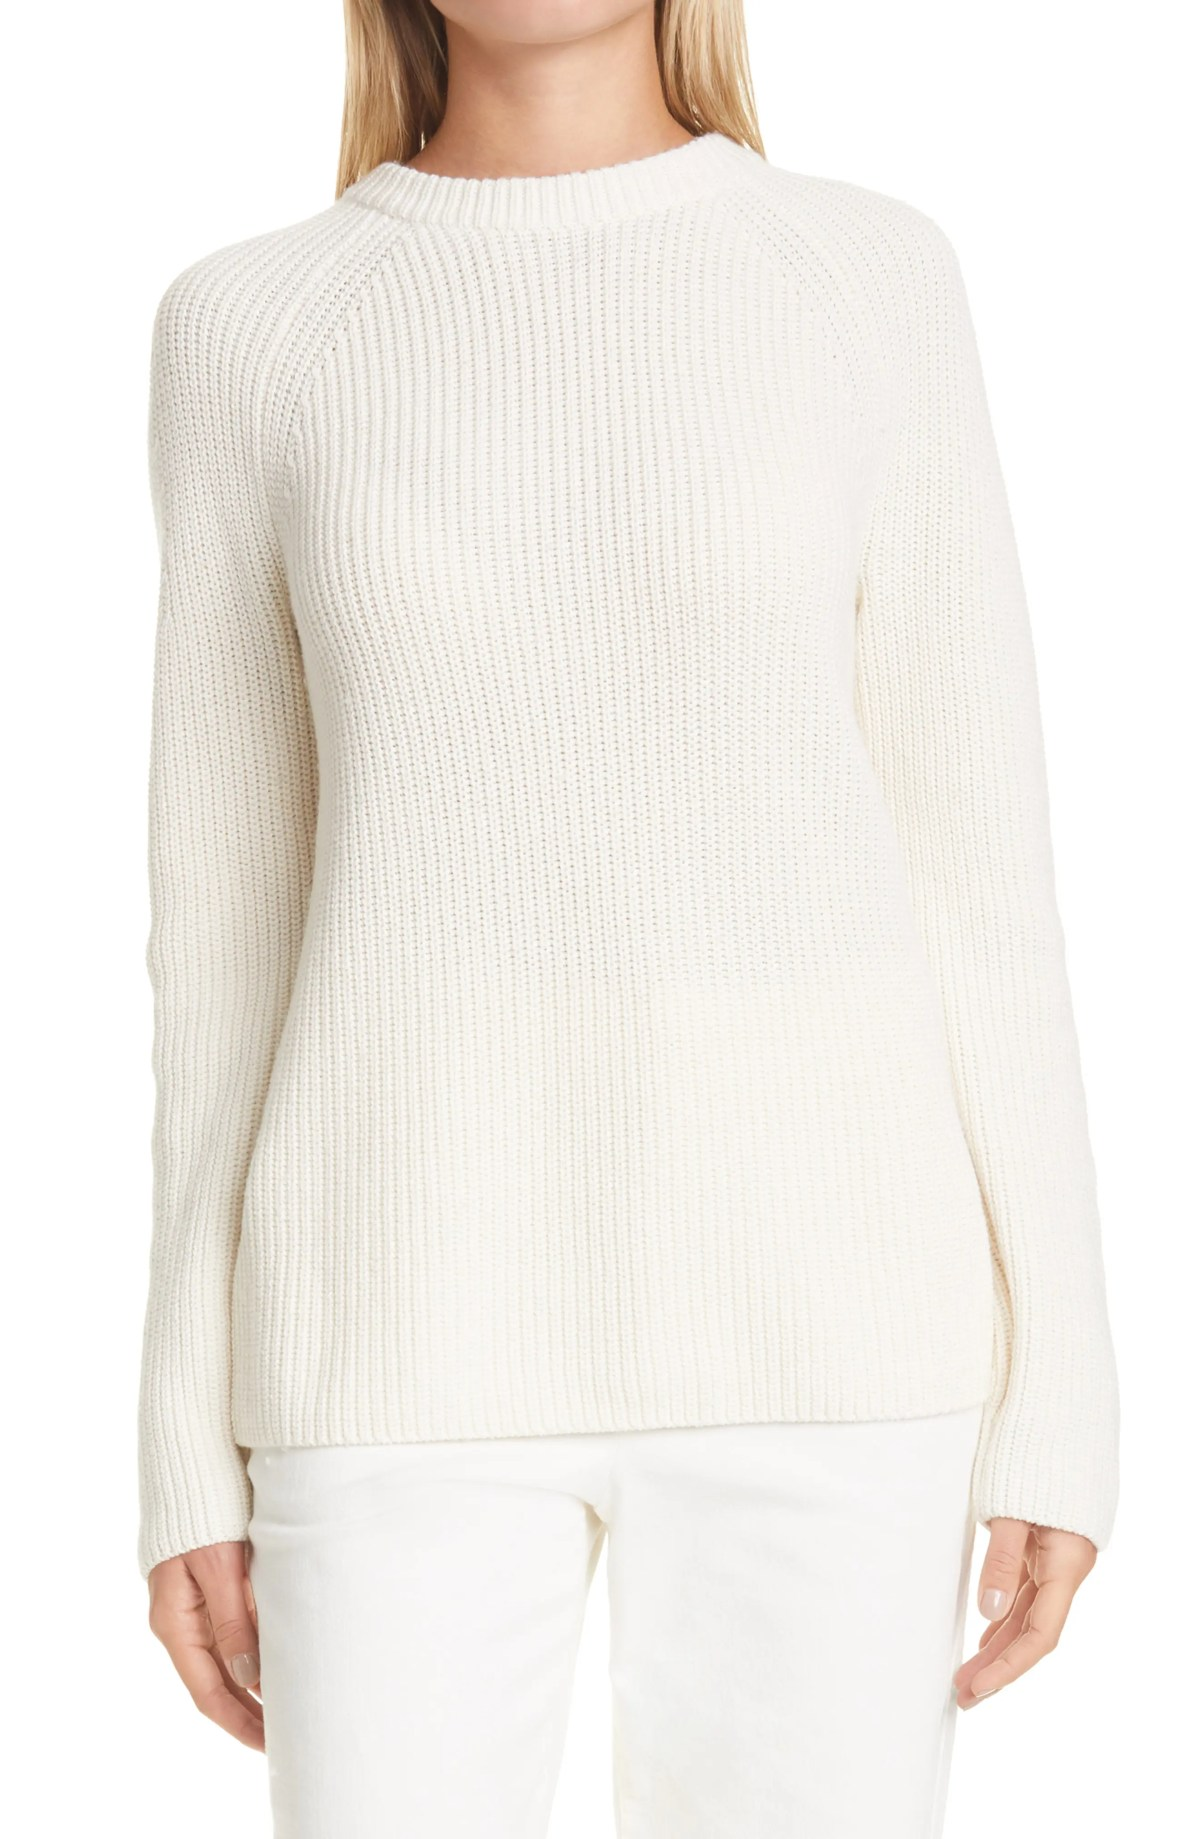 VINCE Cotton & Cashmere Crewneck Sweater, Main, color, IVORY